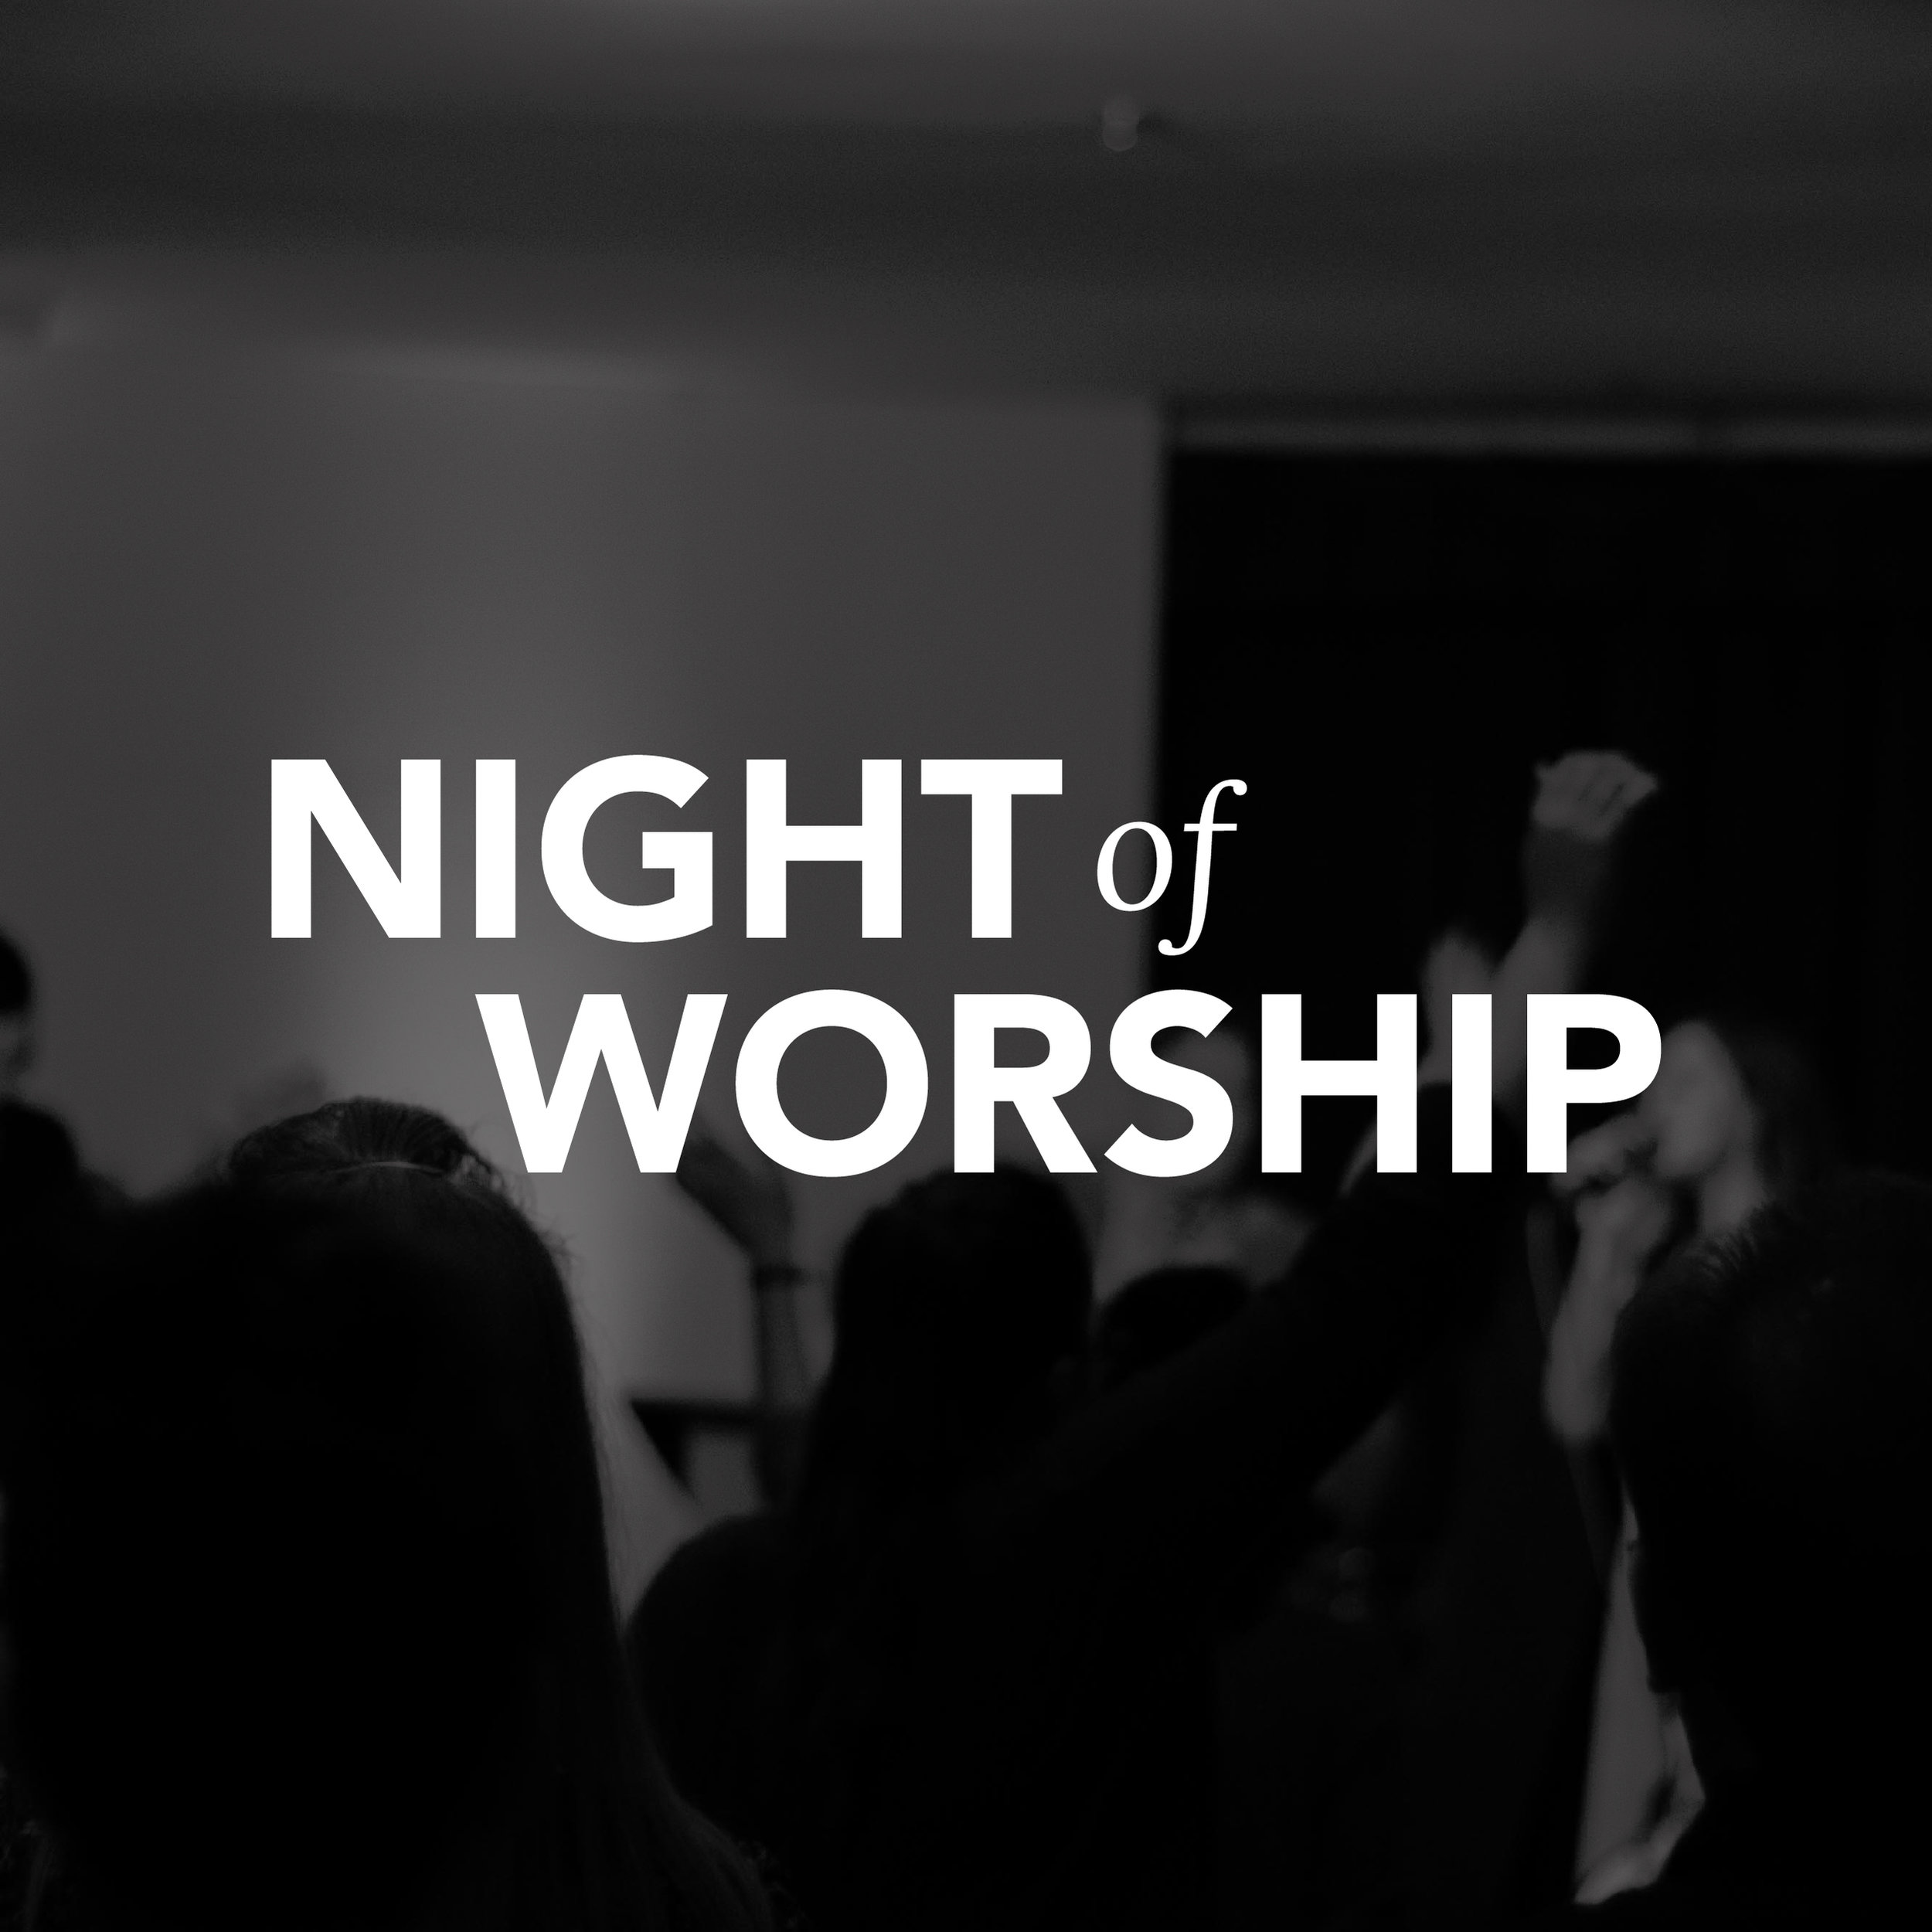 Night of Worship - Branding Systems & Graphic Design, Copywriting Print Production, Video Production, Web Design